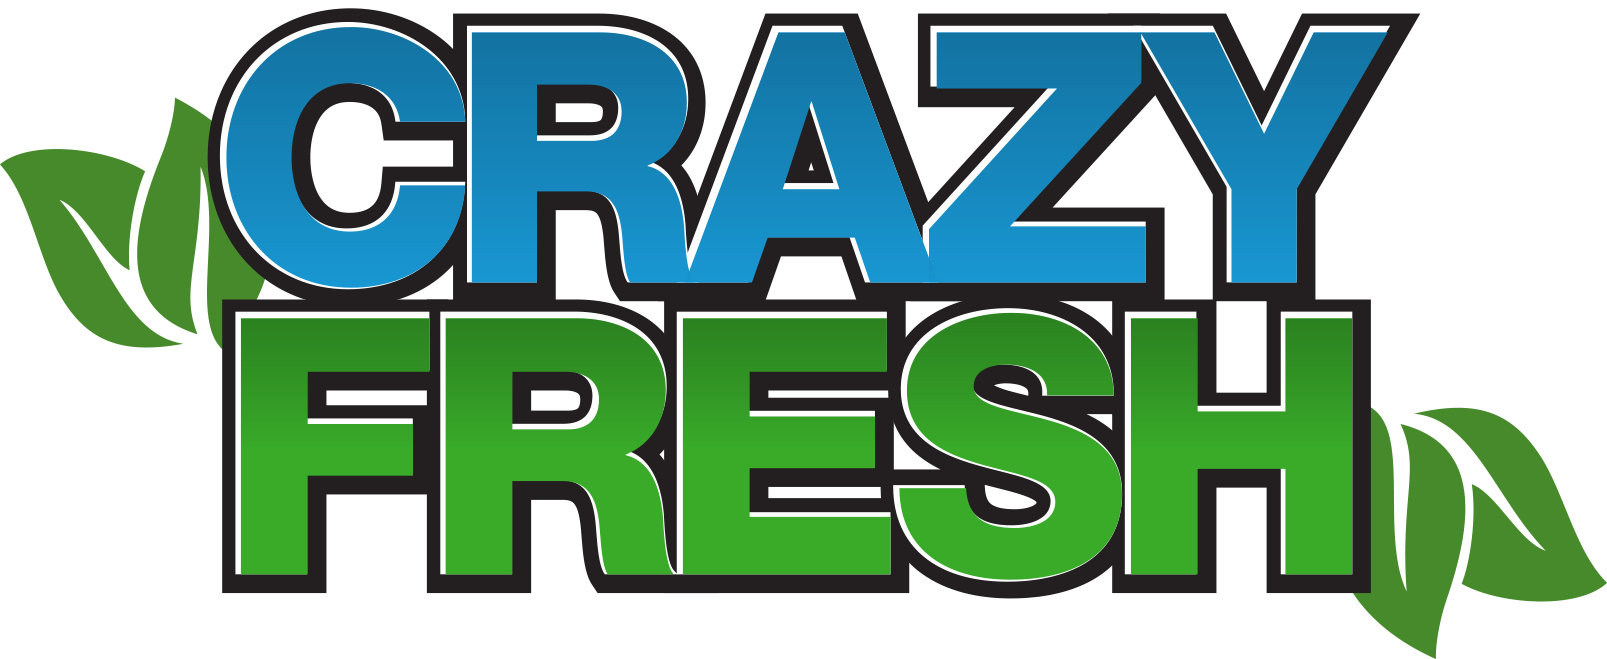 Crazy Fresh-Eat Crazy Fresh